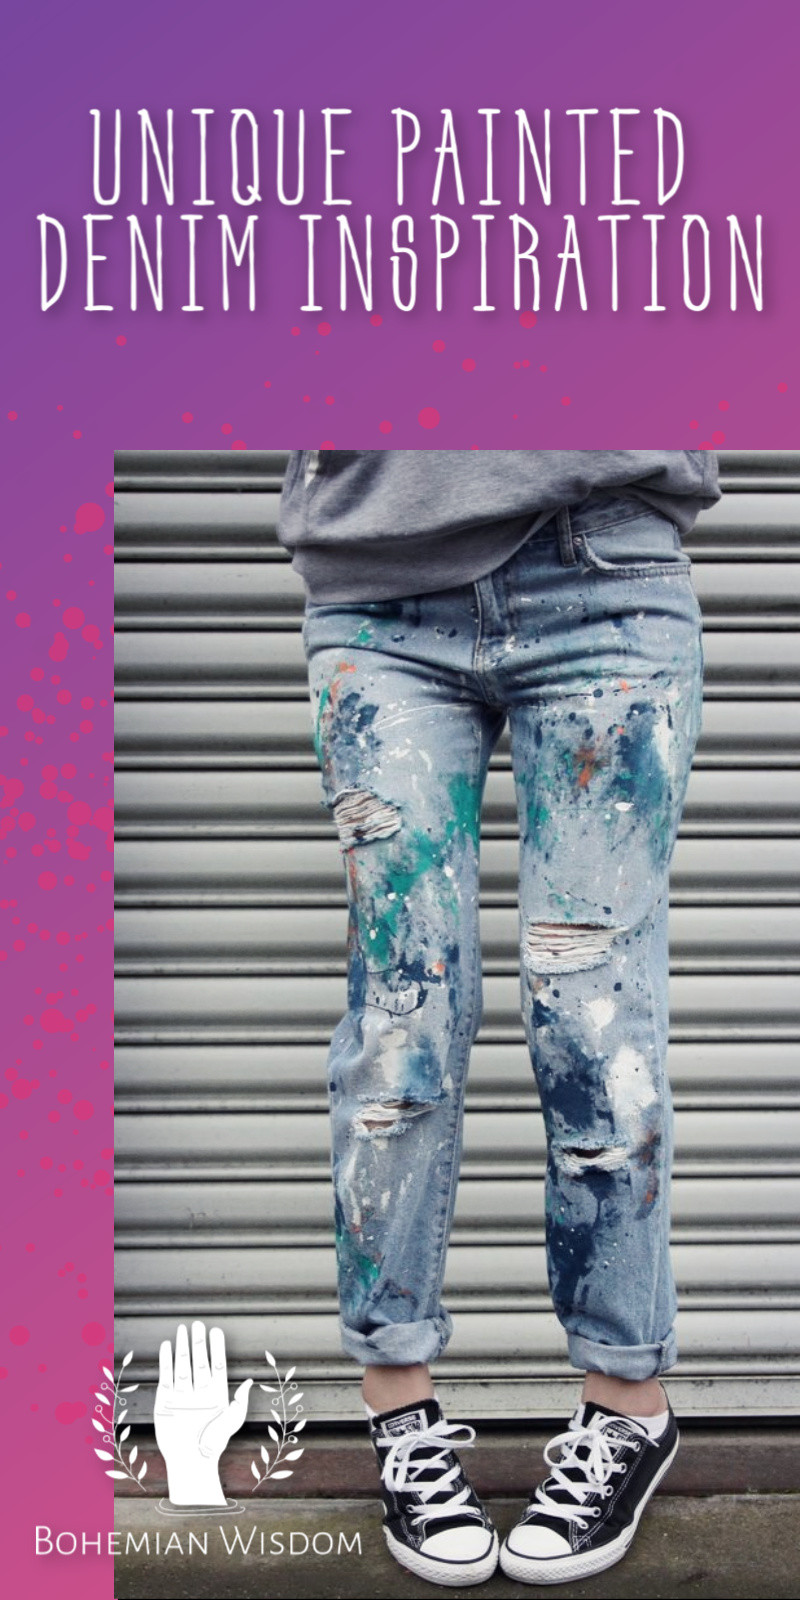 DIY Painted blue jeans. DIY painted denim jacket. Hand Painted jeans. Hand Painted denim. Painted jeans mens. Painted jeans pockets. Painted jeans ideas. Sunflower painted jeans. Floral painted jeans.